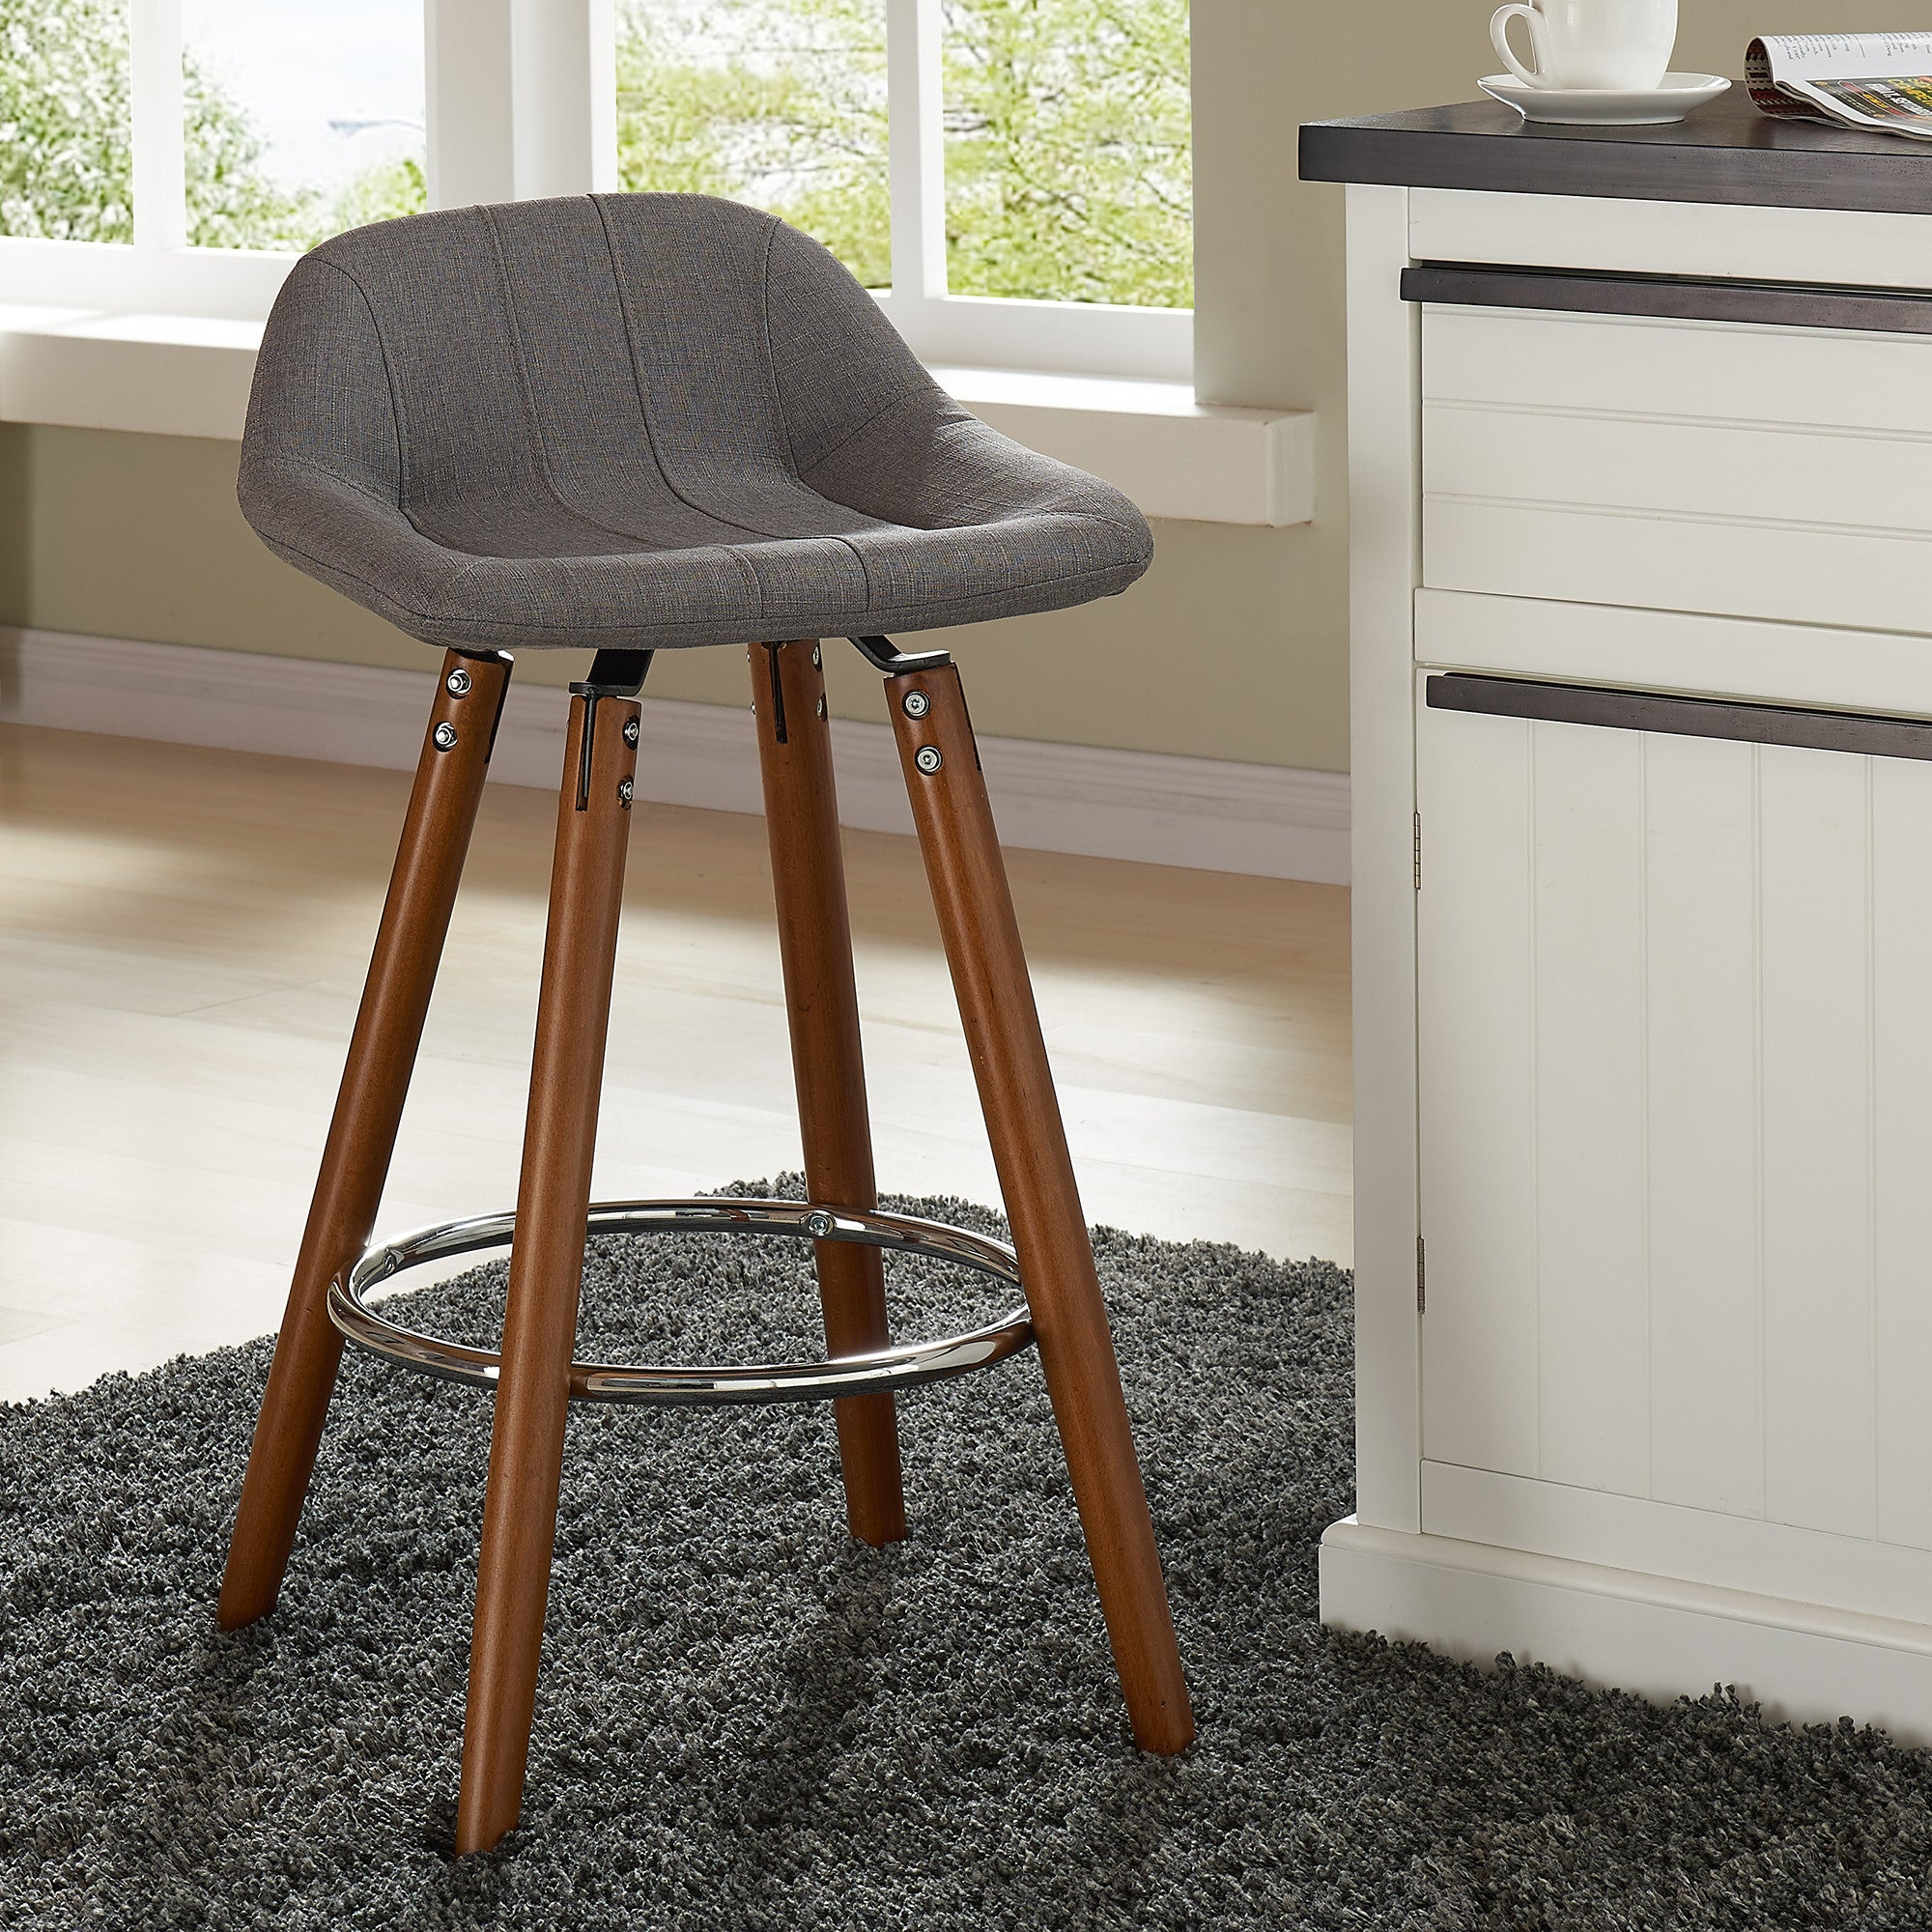 buren in vintage stools counter stool grey